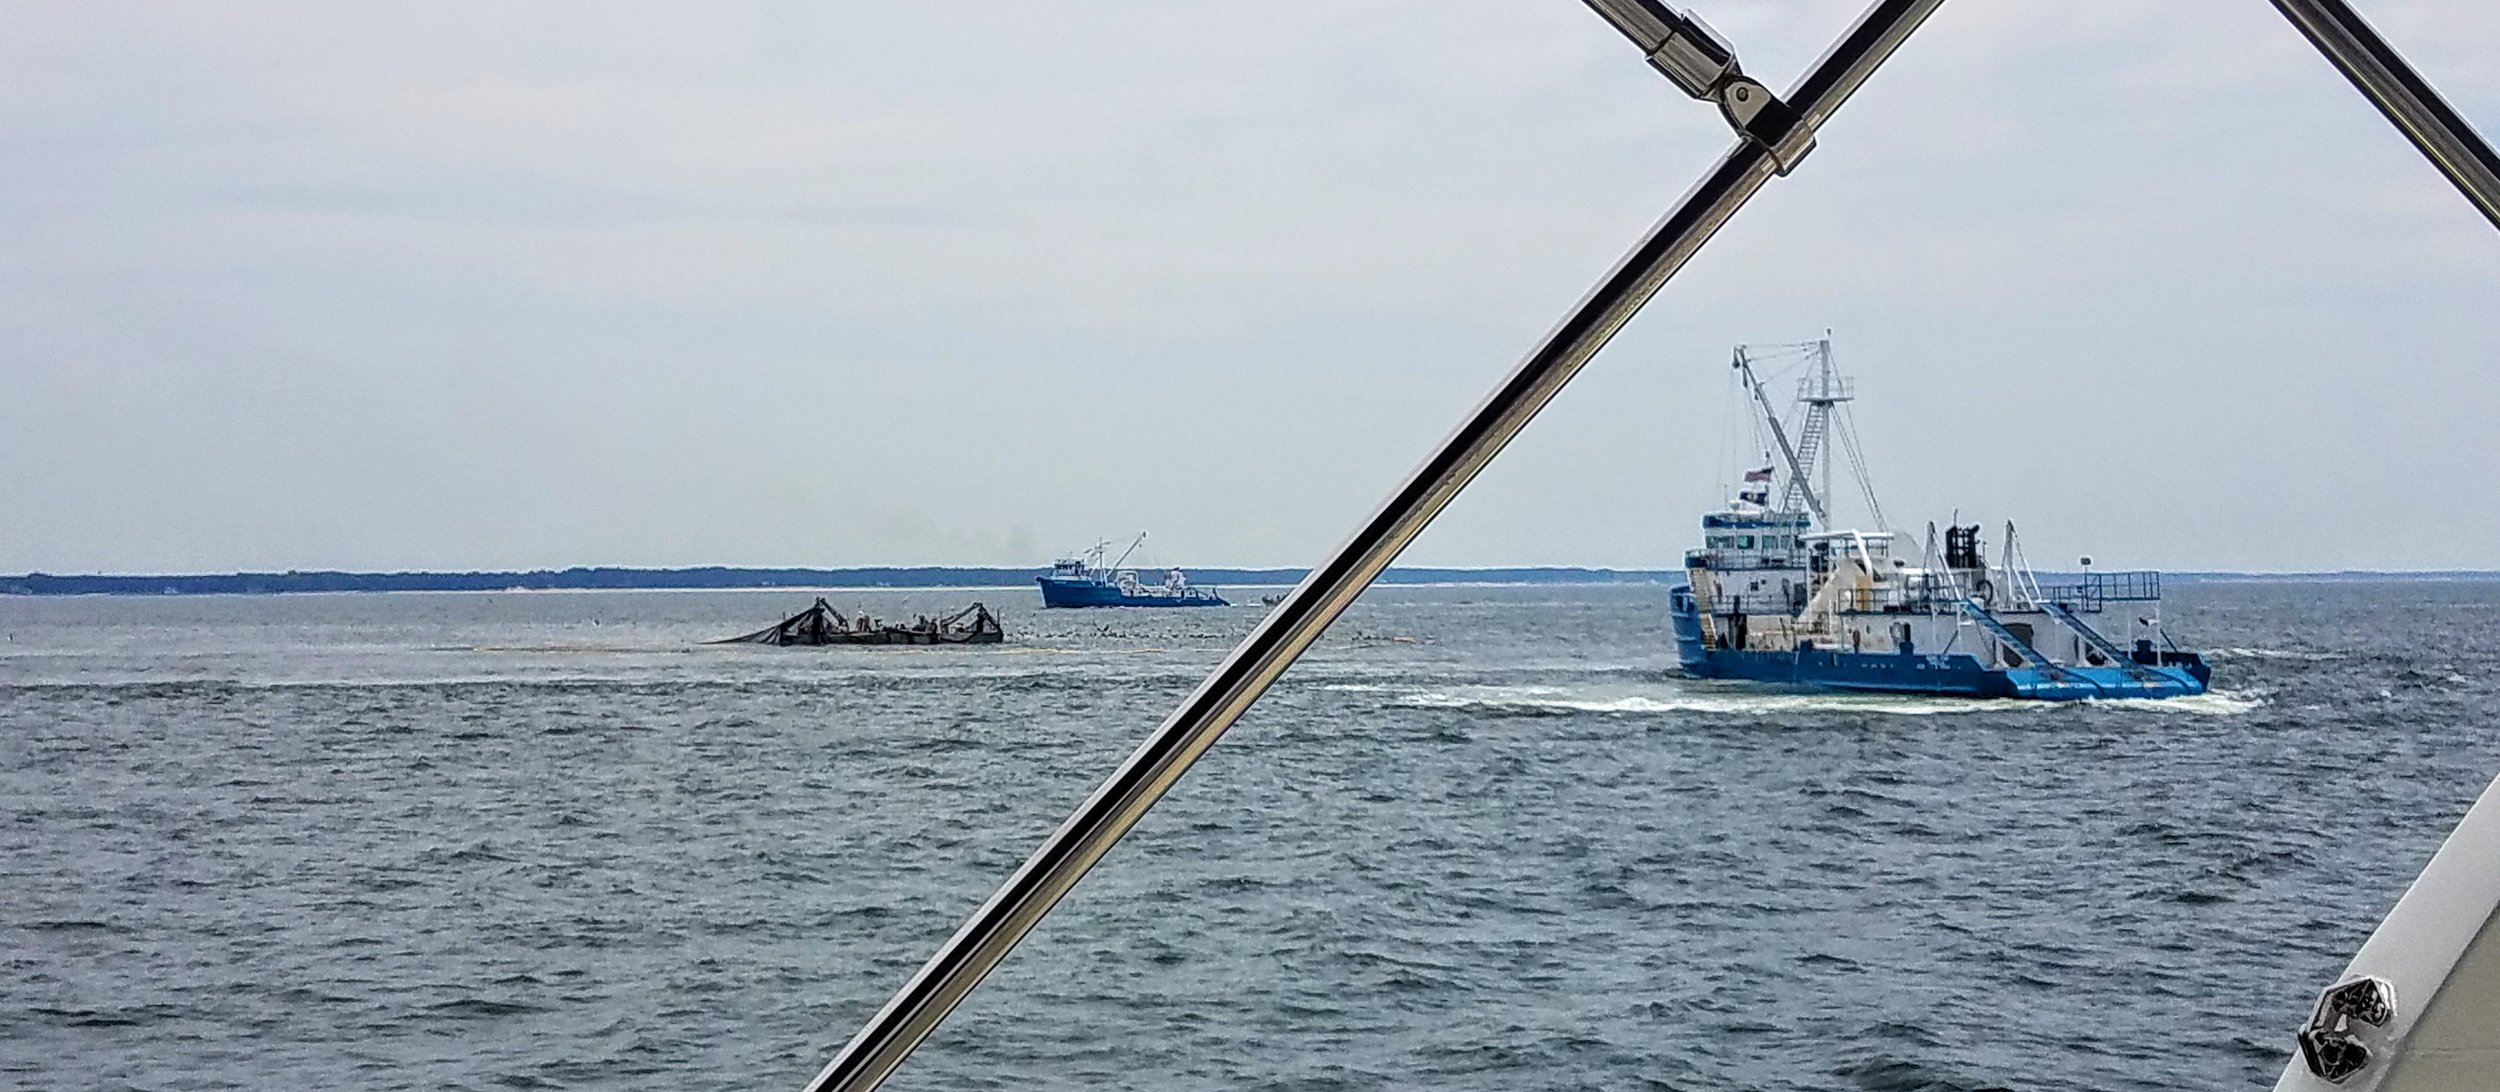 There were at least four of these large commercial fishing vessels working as we were attempting to enter the channel for Cape Charles.